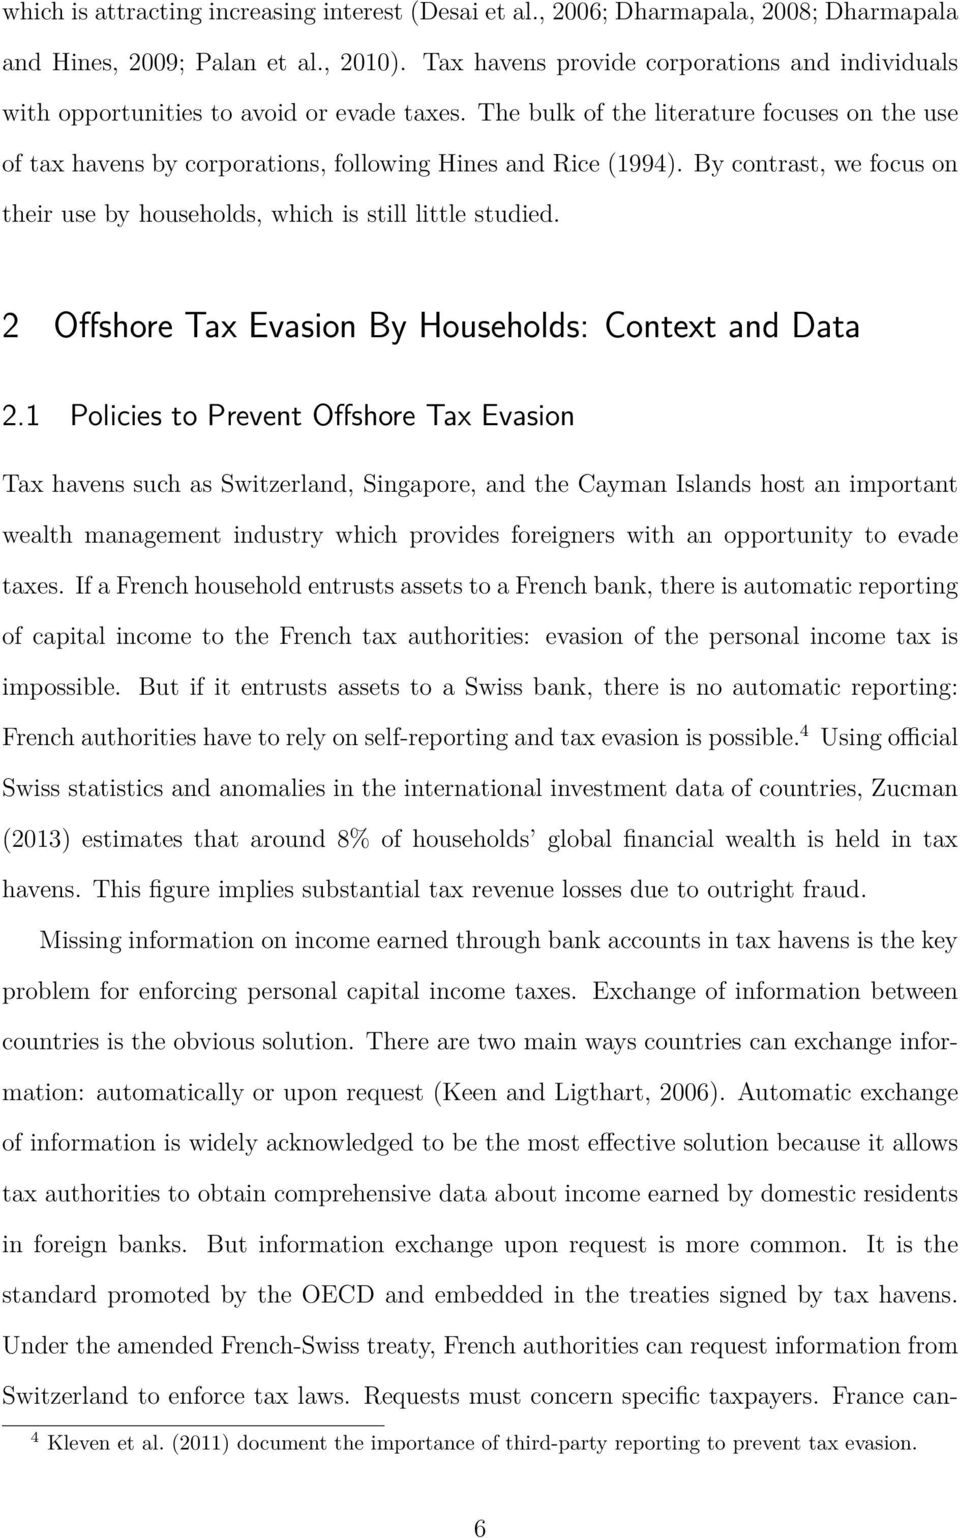 The bulk of the literature focuses on the use of tax havens by corporations, following Hines and Rice (1994). By contrast, we focus on their use by households, which is still little studied.